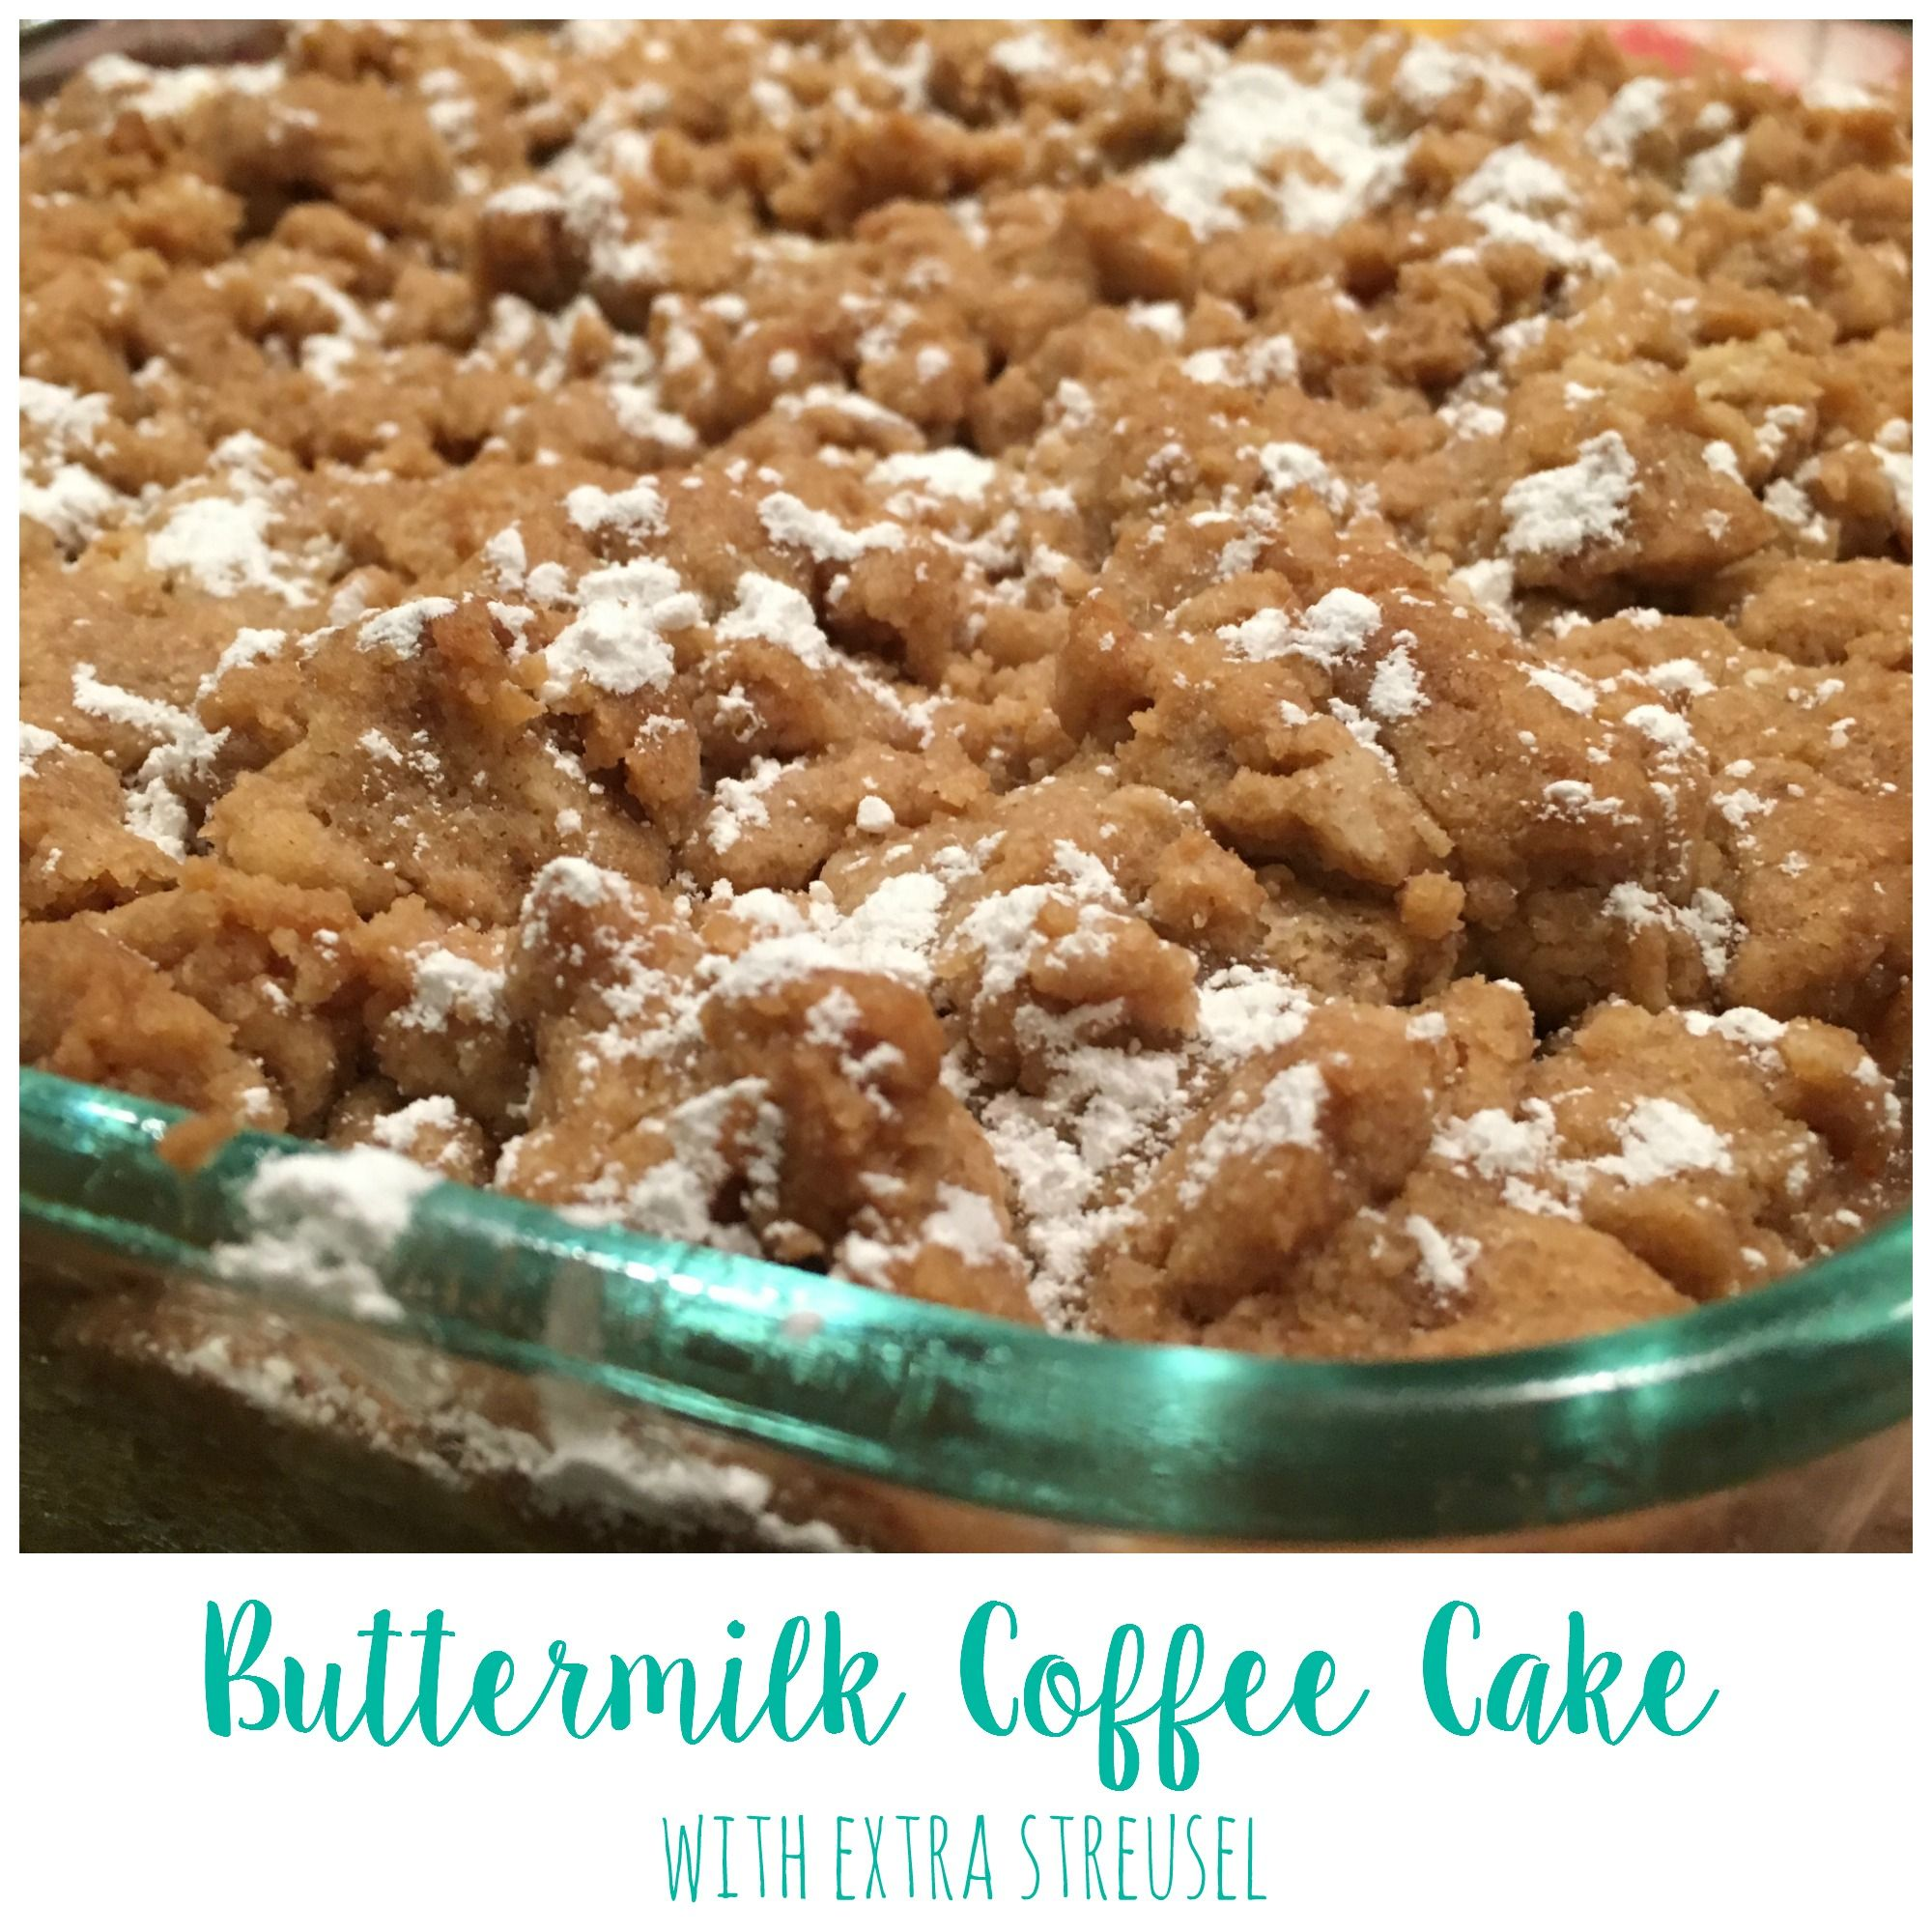 Buttermilk Coffee Cake With Extra Streusel Recipe Coffee Cake Buttermilk Recipes Buttermilk Coffee Cake